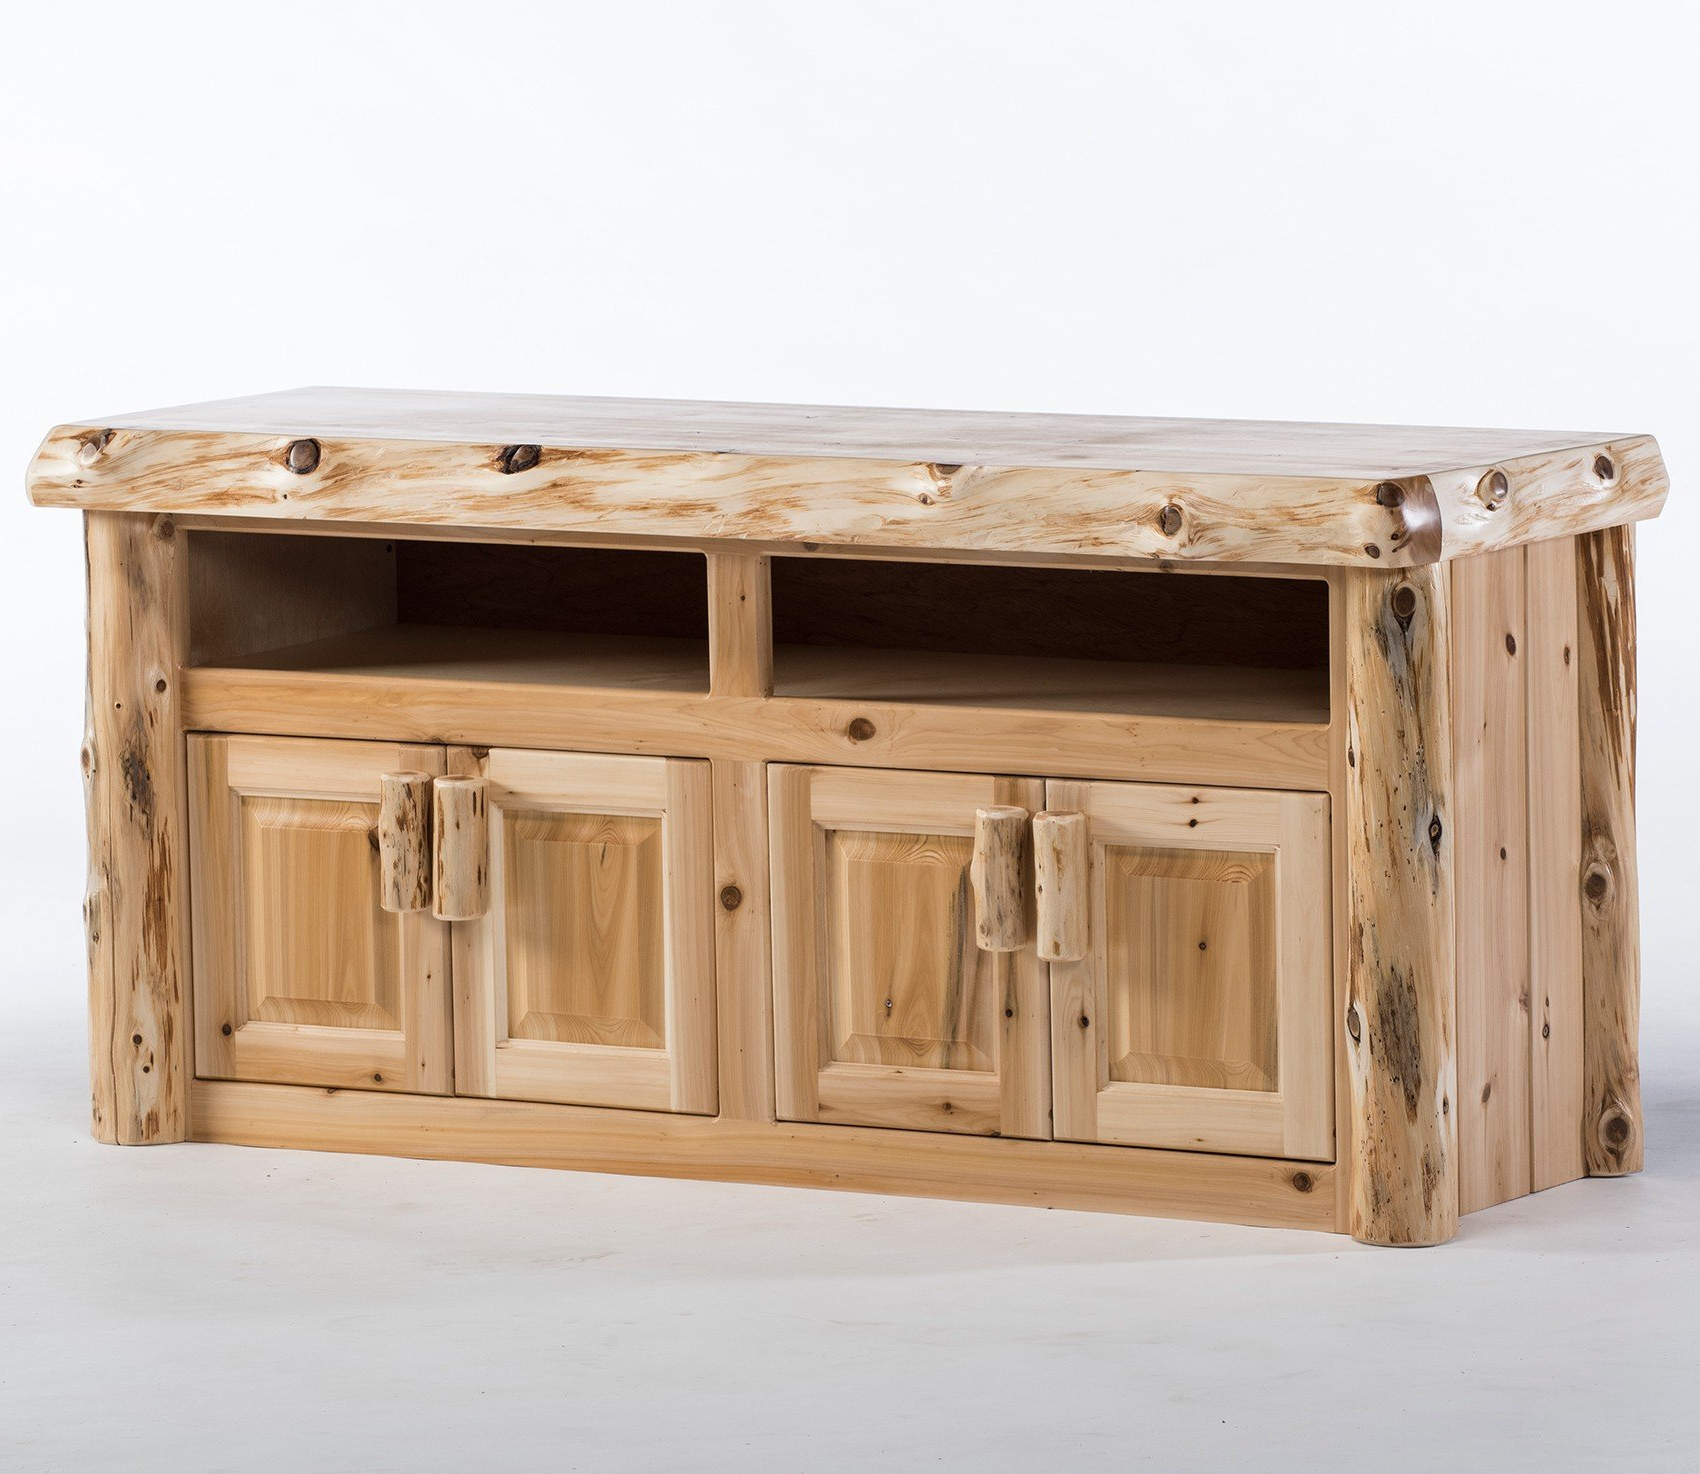 Recent Recycled Wood Tv Stands Inside Reclaimed Wood Tv Stands & Rustic Tv Stands: Log Tv Stand & Rustic (View 12 of 20)